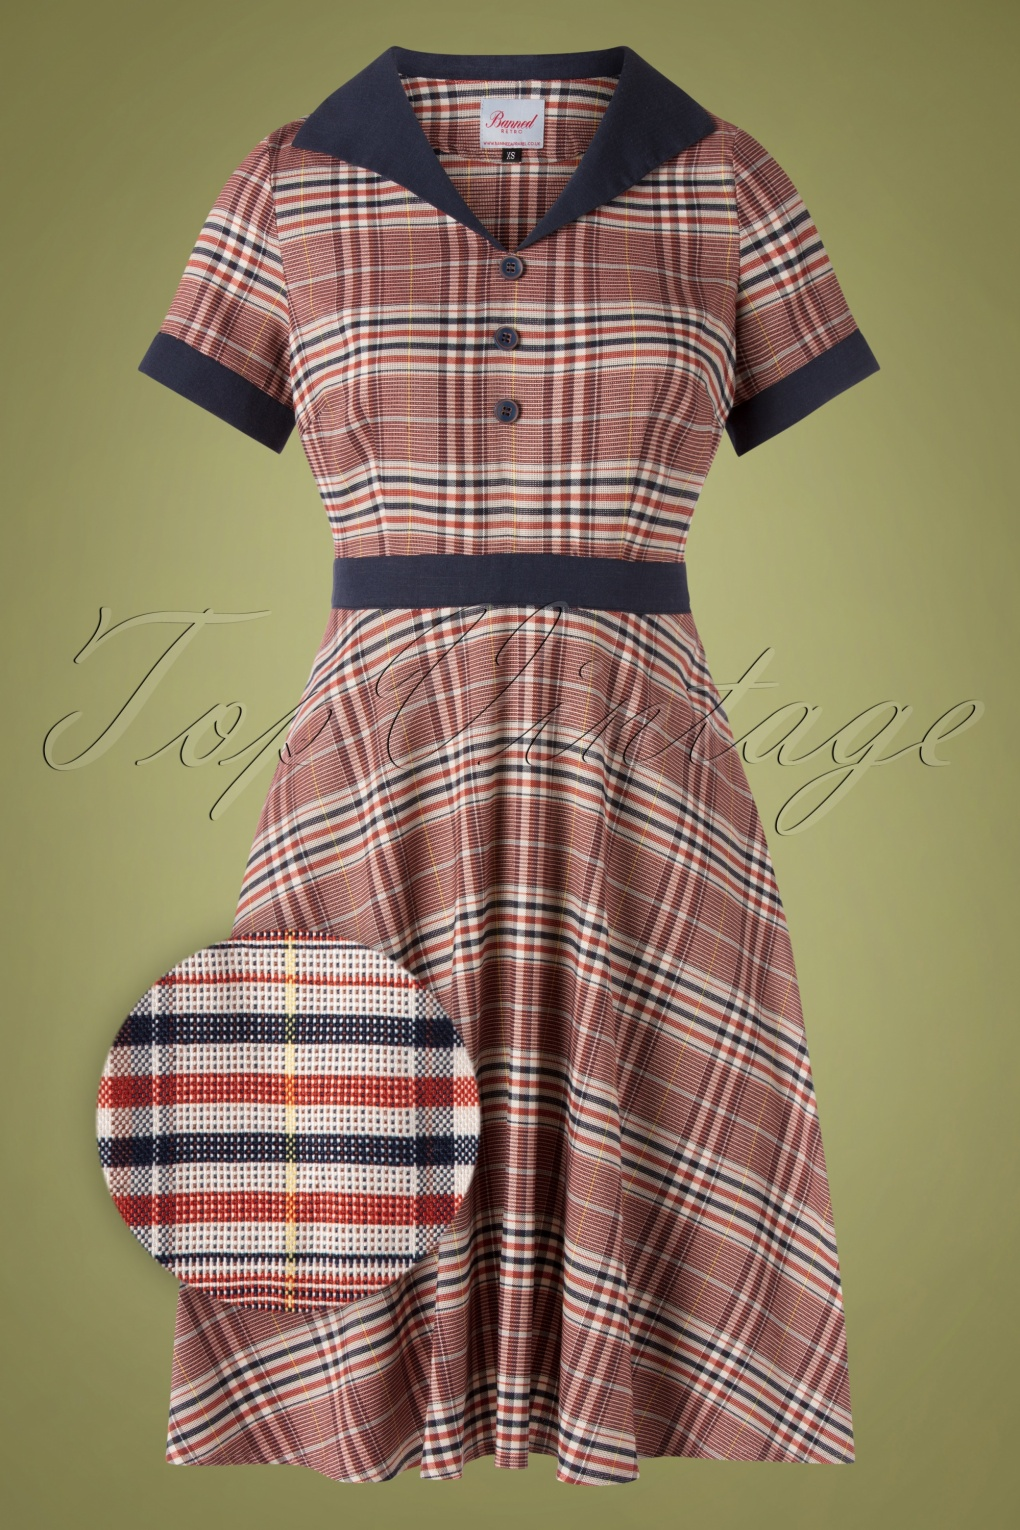 Fifties Dresses : 1950s Style Swing to Wiggle Dresses 50s The Classic Swing Dress in Multicheck £52.06 AT vintagedancer.com